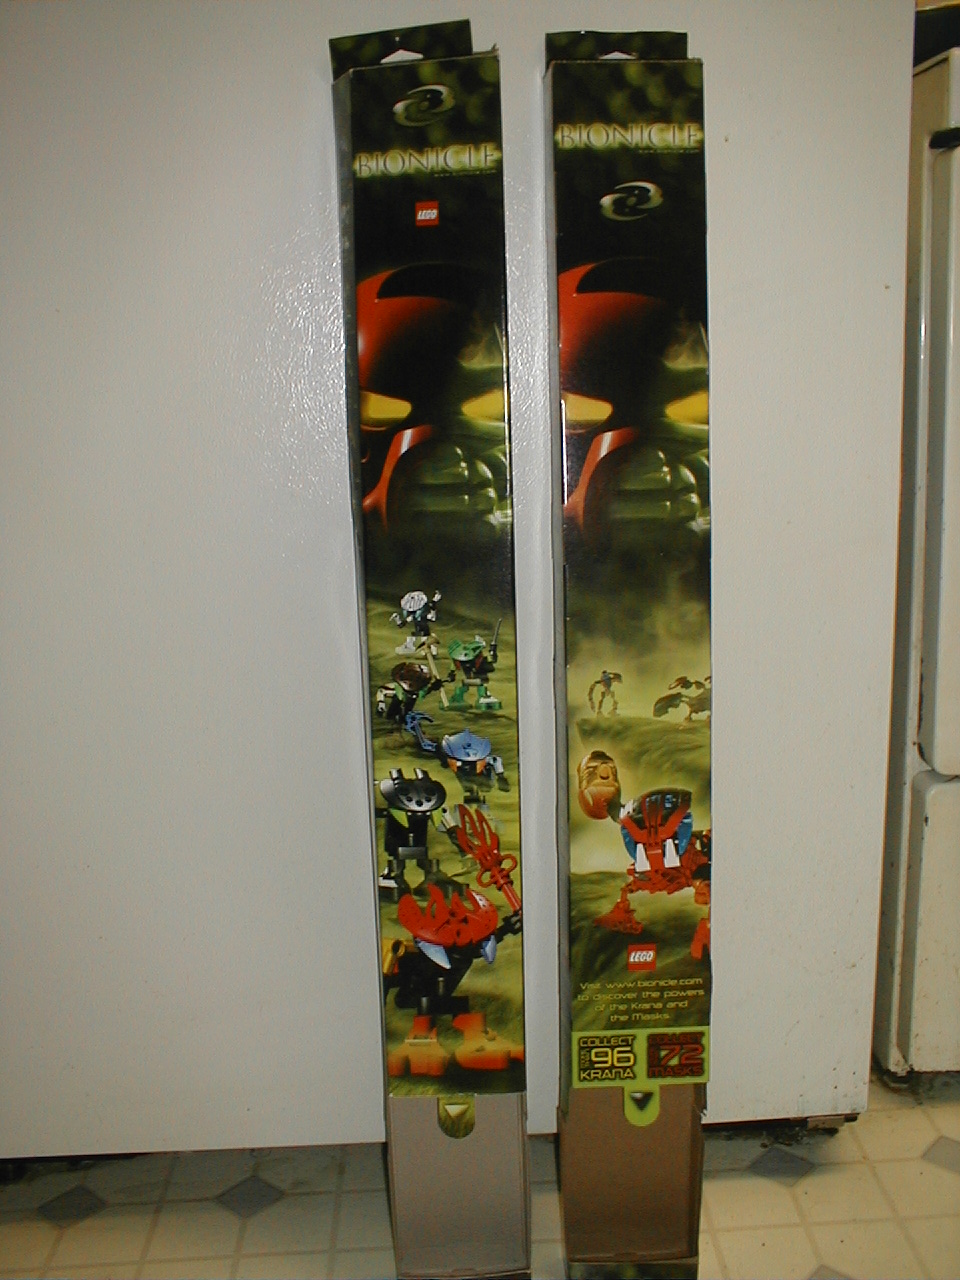 02_krana_pack_wall_holder_display.jpg